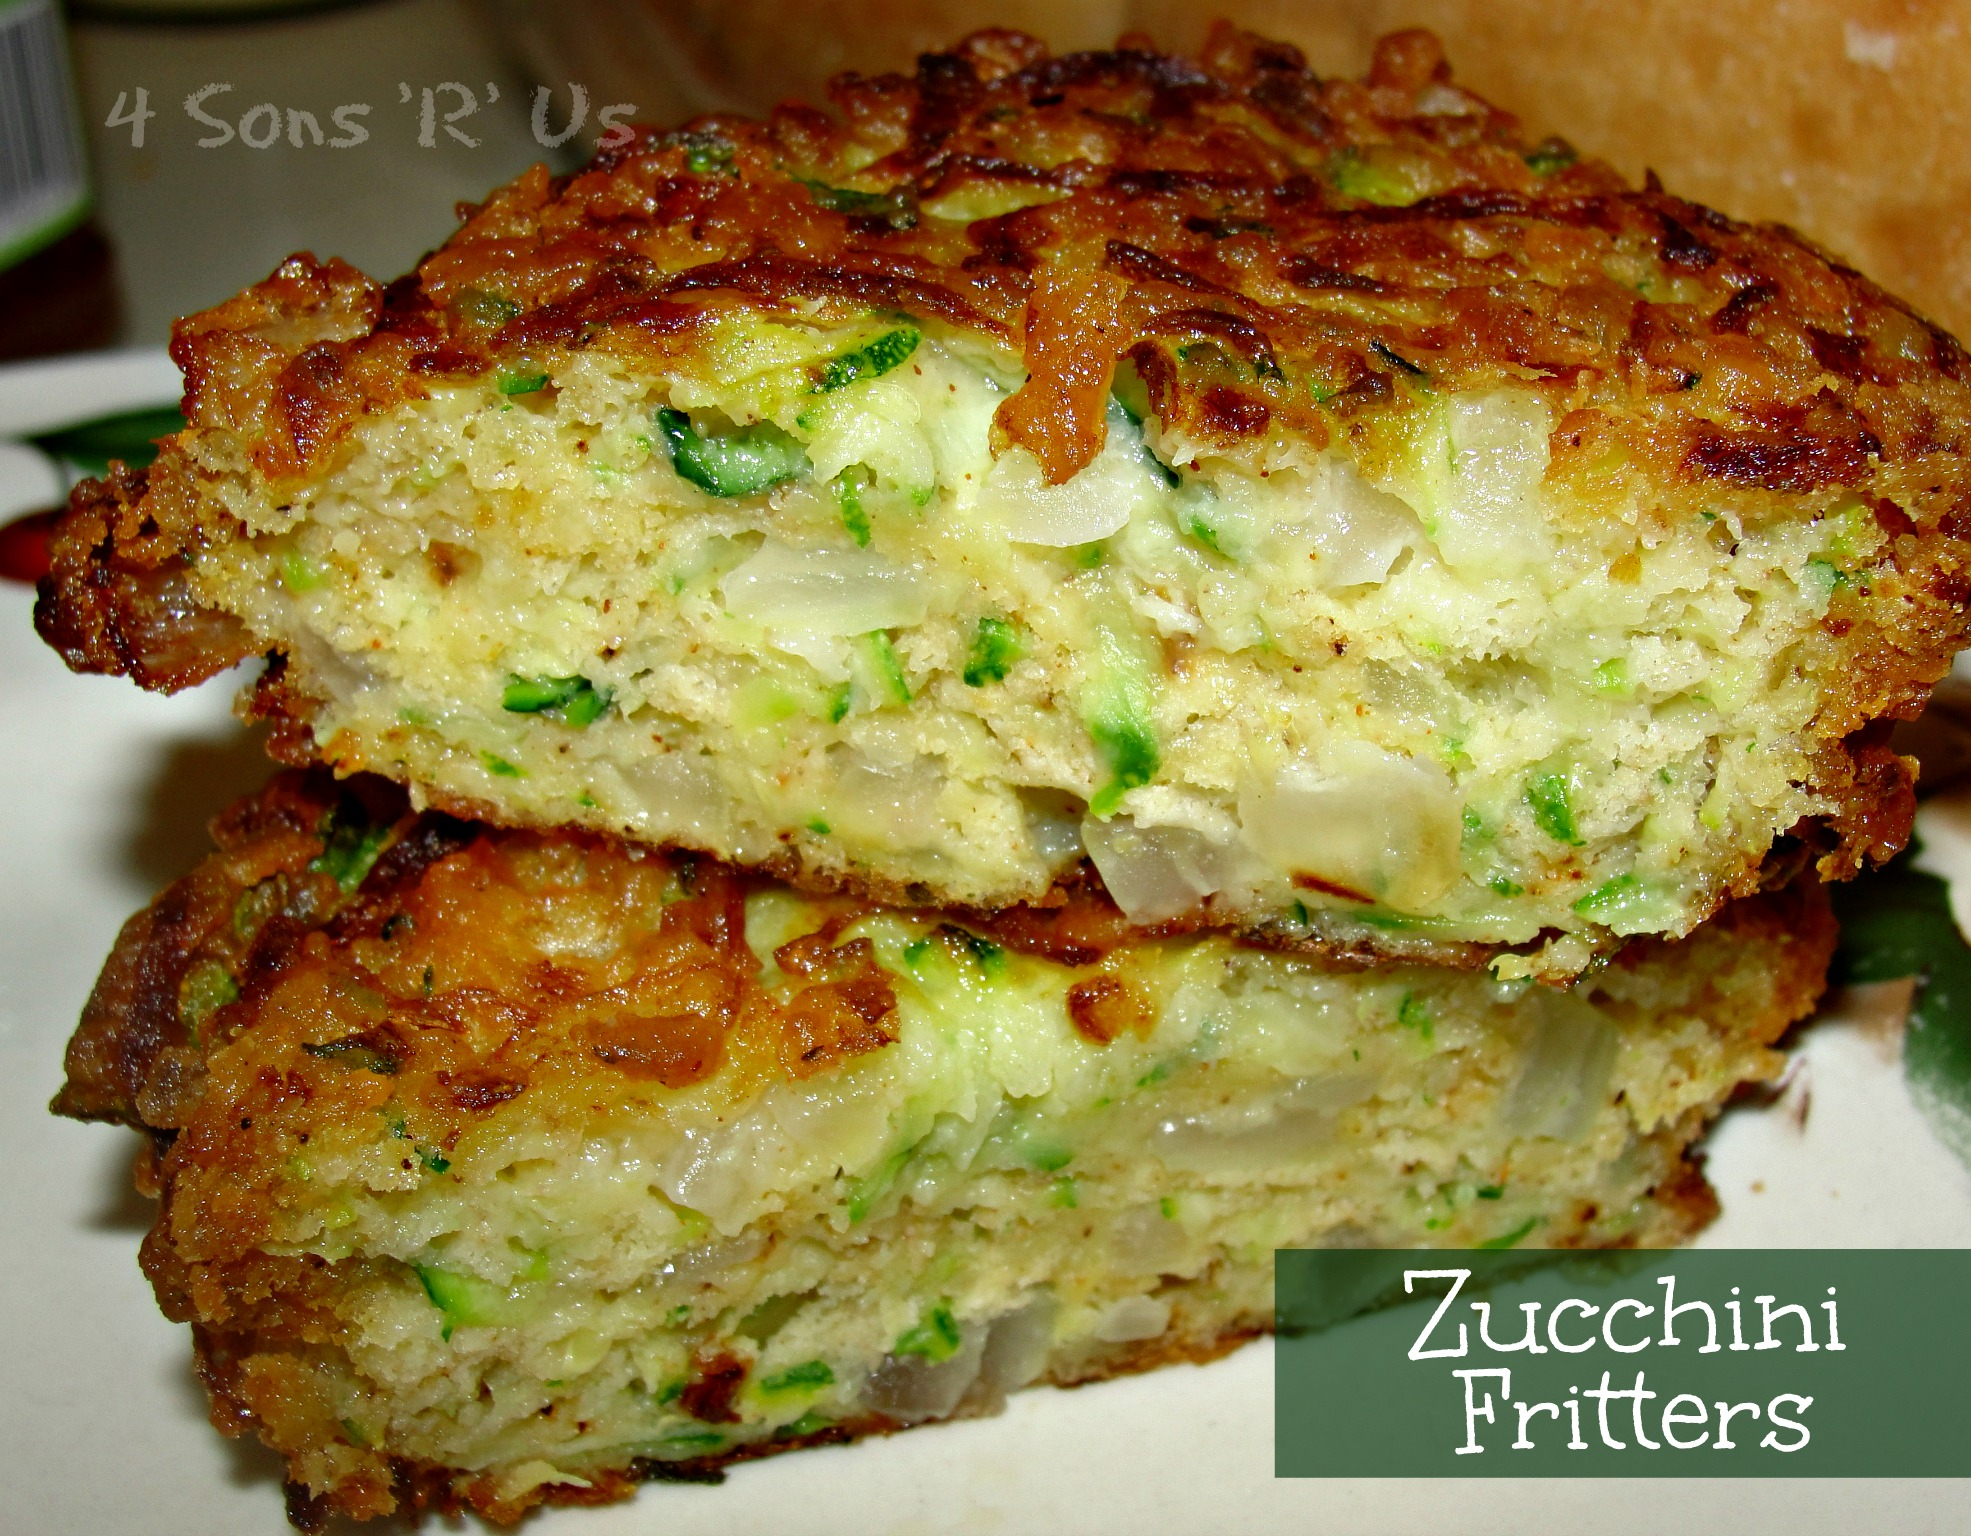 Zucchini Fritters with Chili Lime Mayo | 4 Sons 'R' Us